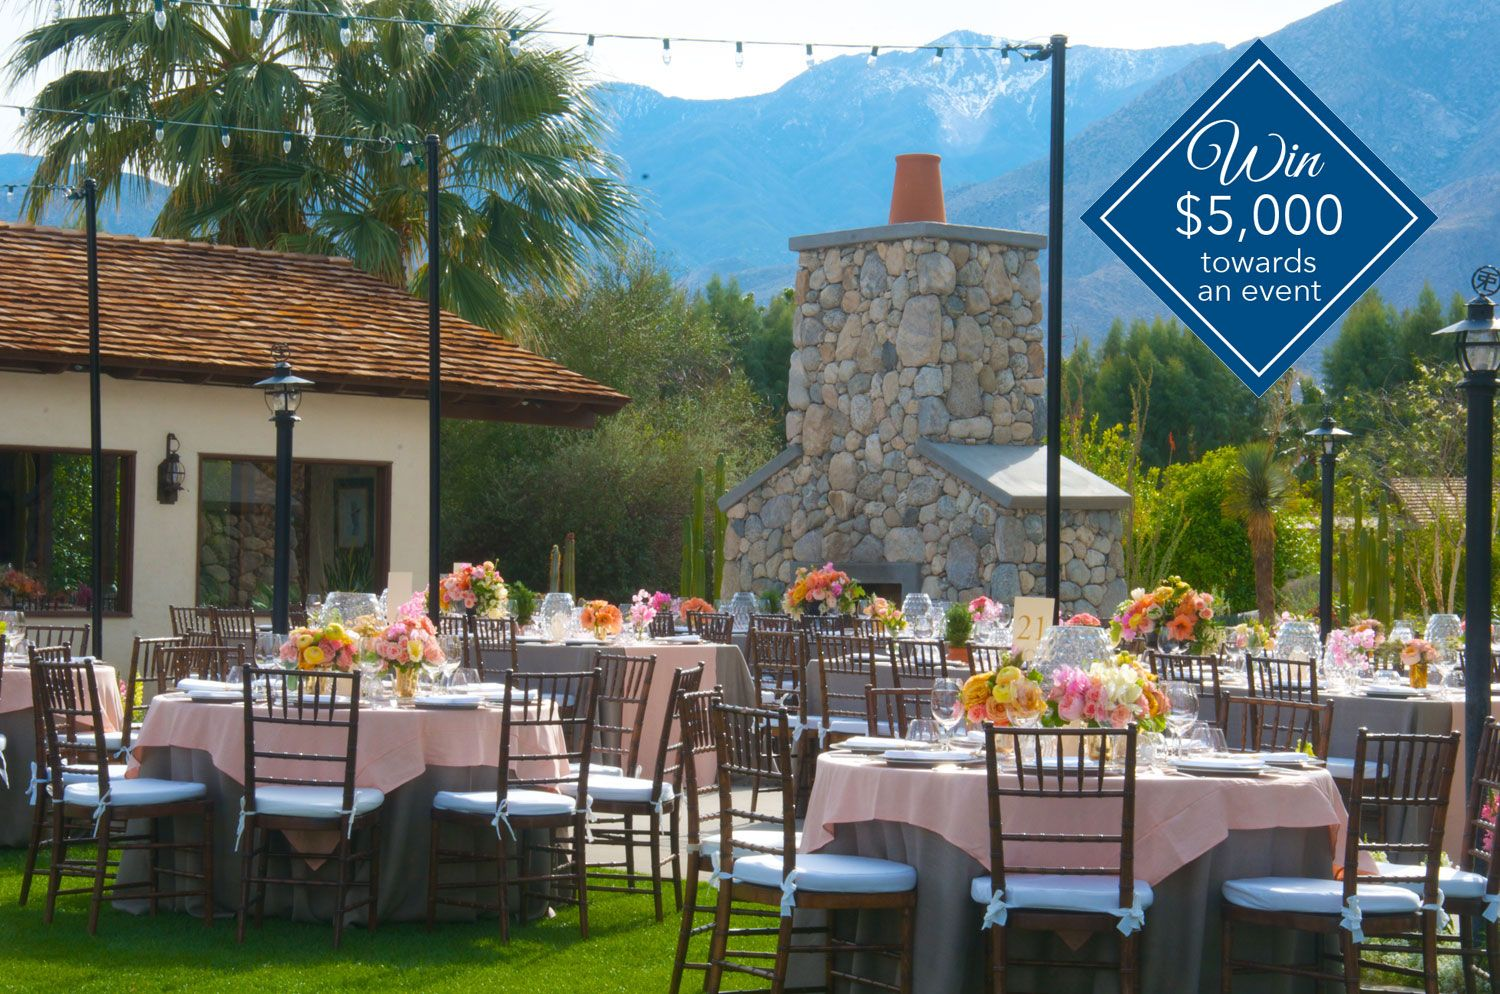 Warm Up Your Winter Wedding Https Classicpartyrentals Com Giveaway Win A Classic Party Rentals Palmdesert Wedding W Event Rental Event Classic Linen